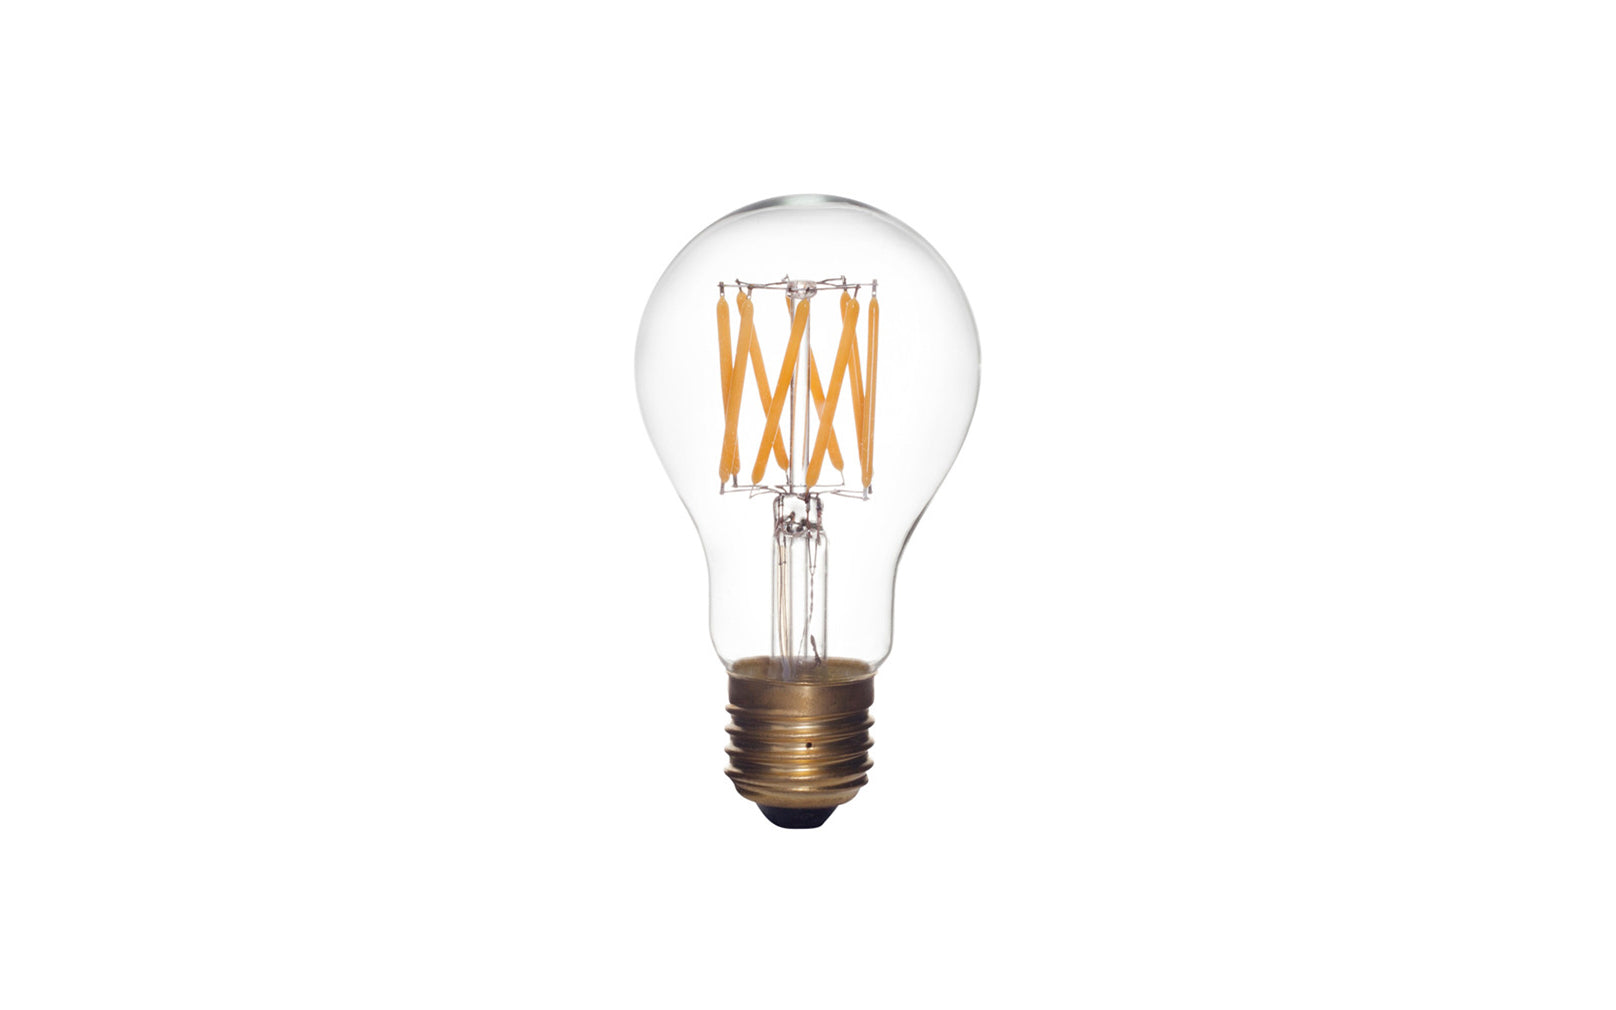 Tala Globe 6W LED Filament Light Bulb